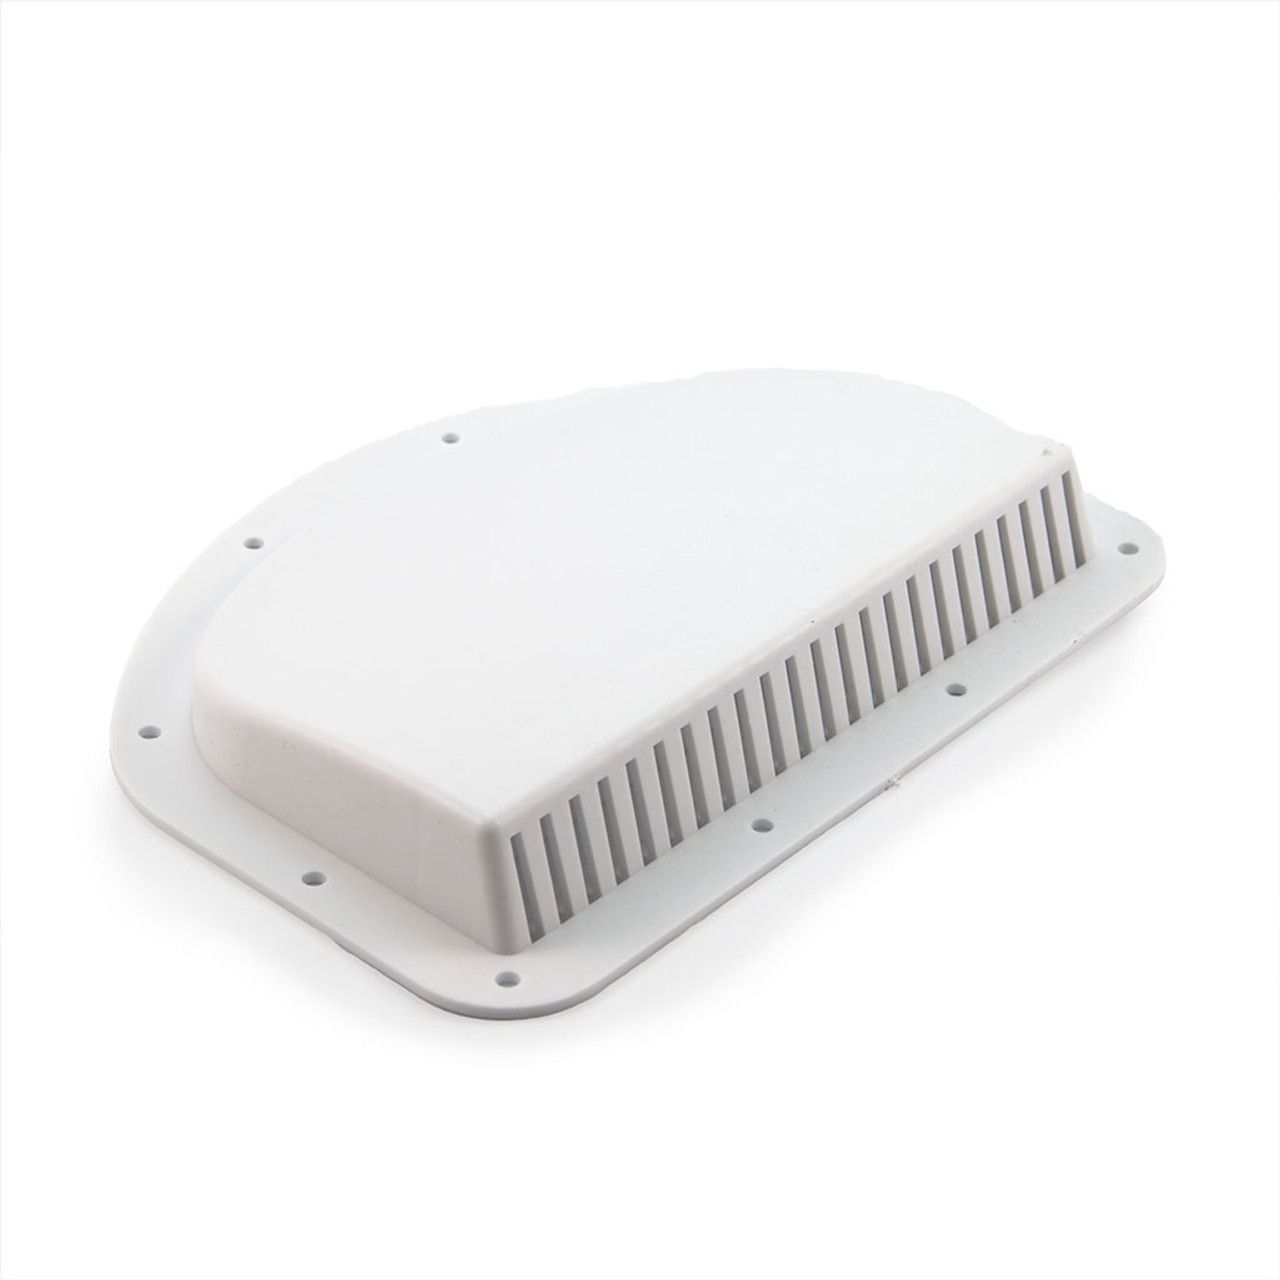 Replacement Aero Vent Cover - White